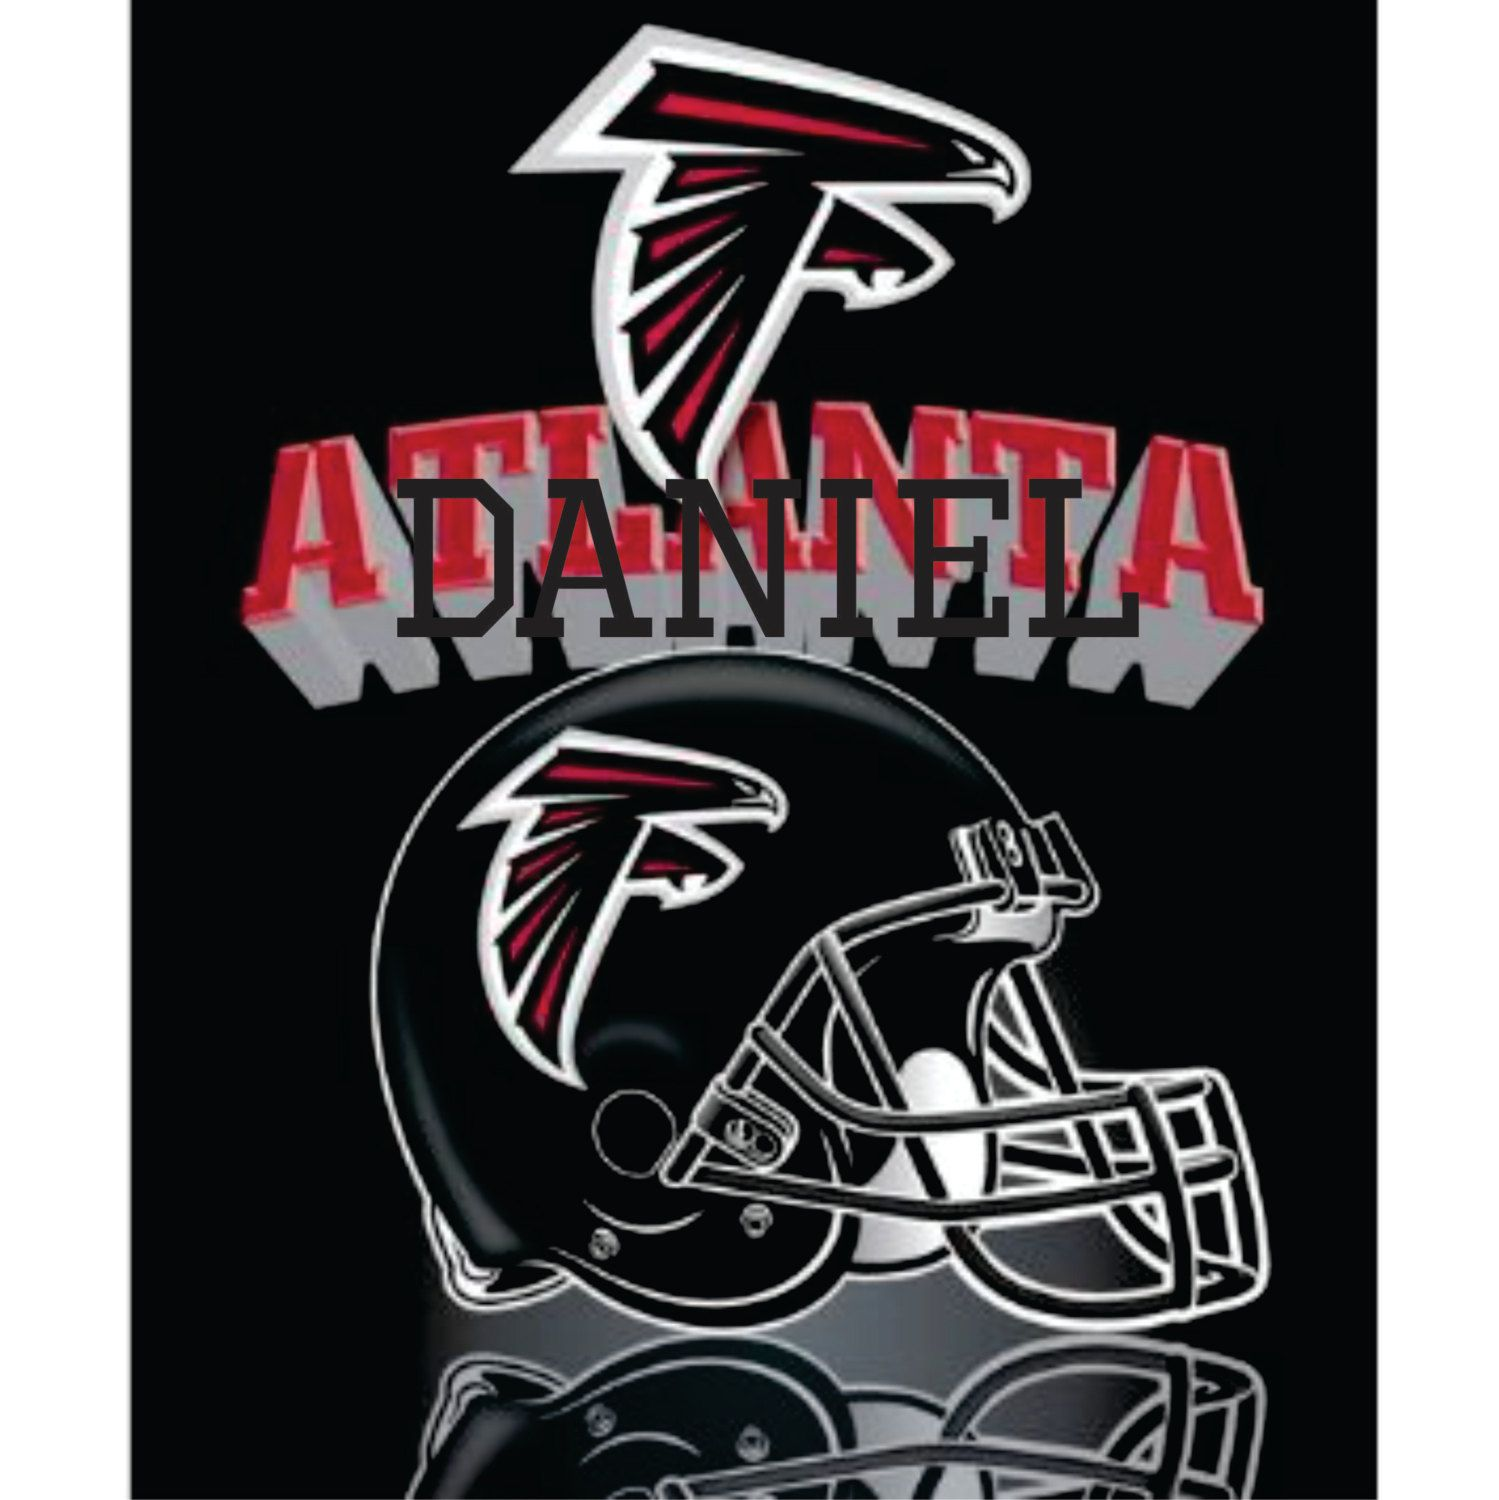 Personalized Nfl Atlanta Falcons Fleece Blanket Atlanta Blanket Personalized Gift Football Blanket Throw Atlanta Falcons Falcons Atlanta